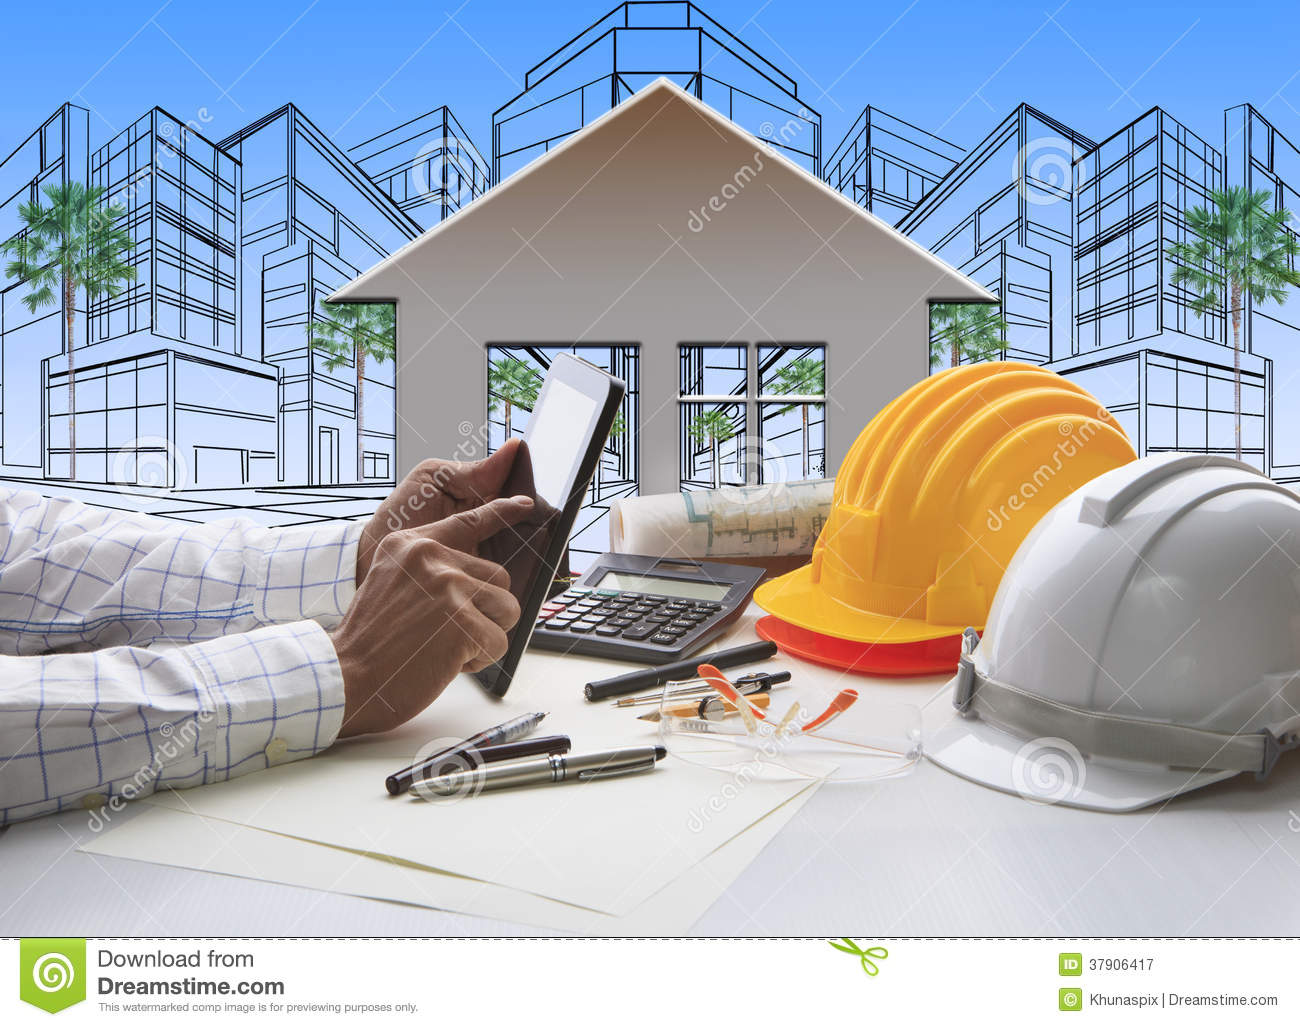 computers in construction industry